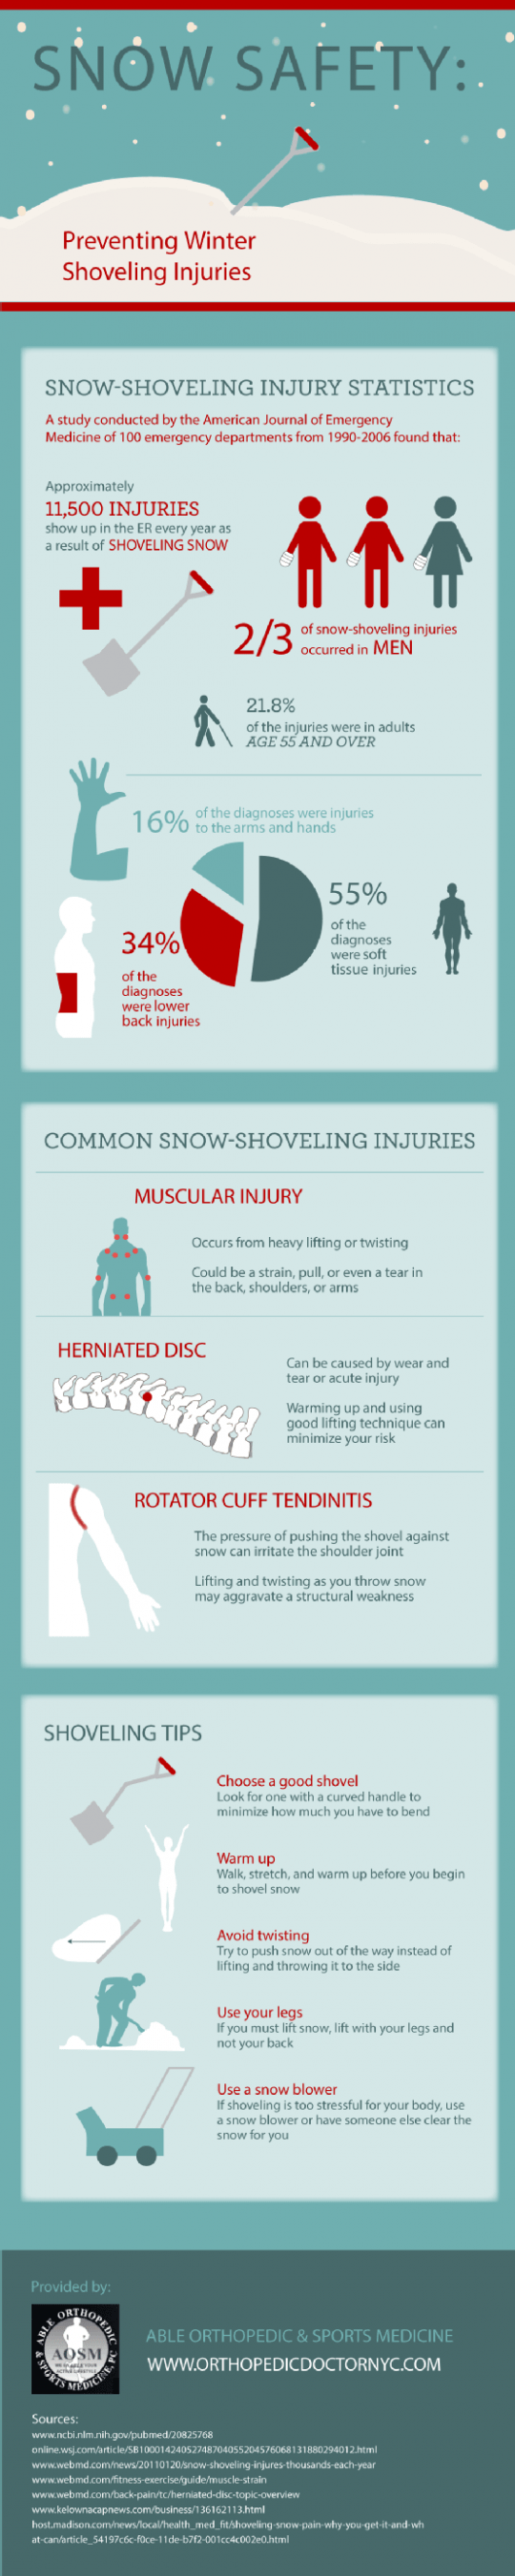 Preventing Winter Shoveling Injuries